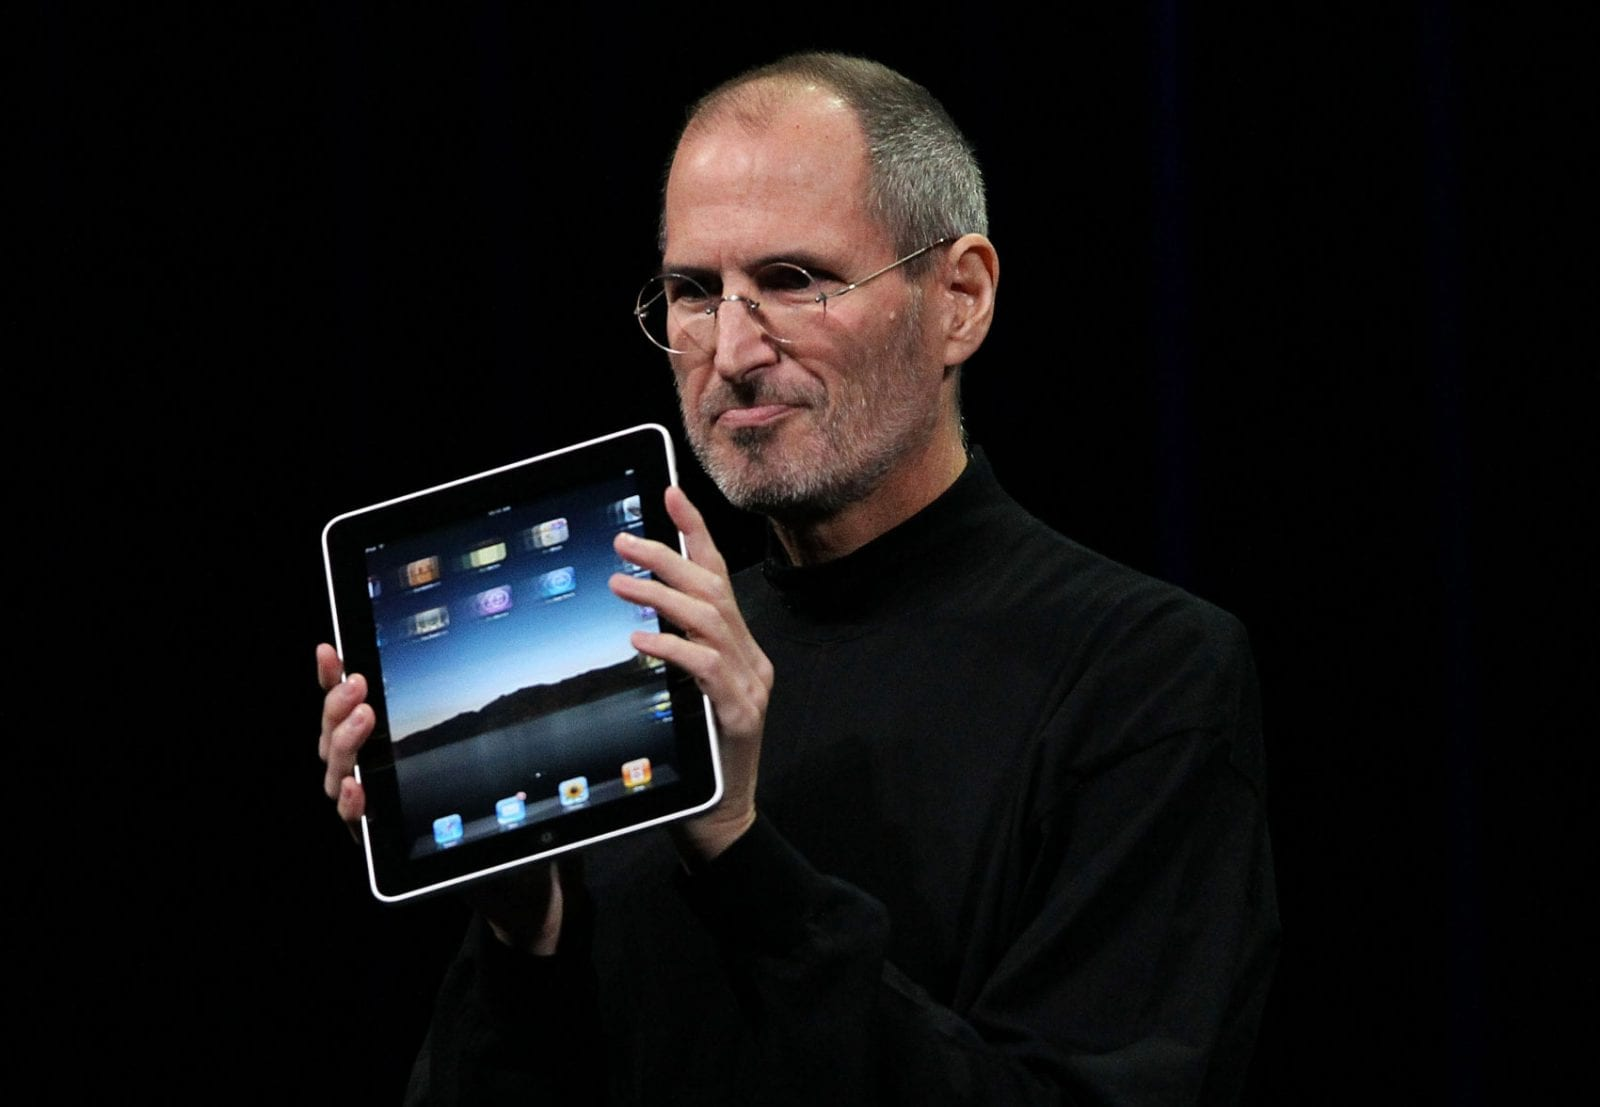 How Apple's iPad has evolved since 2010, from original to mini to Pro